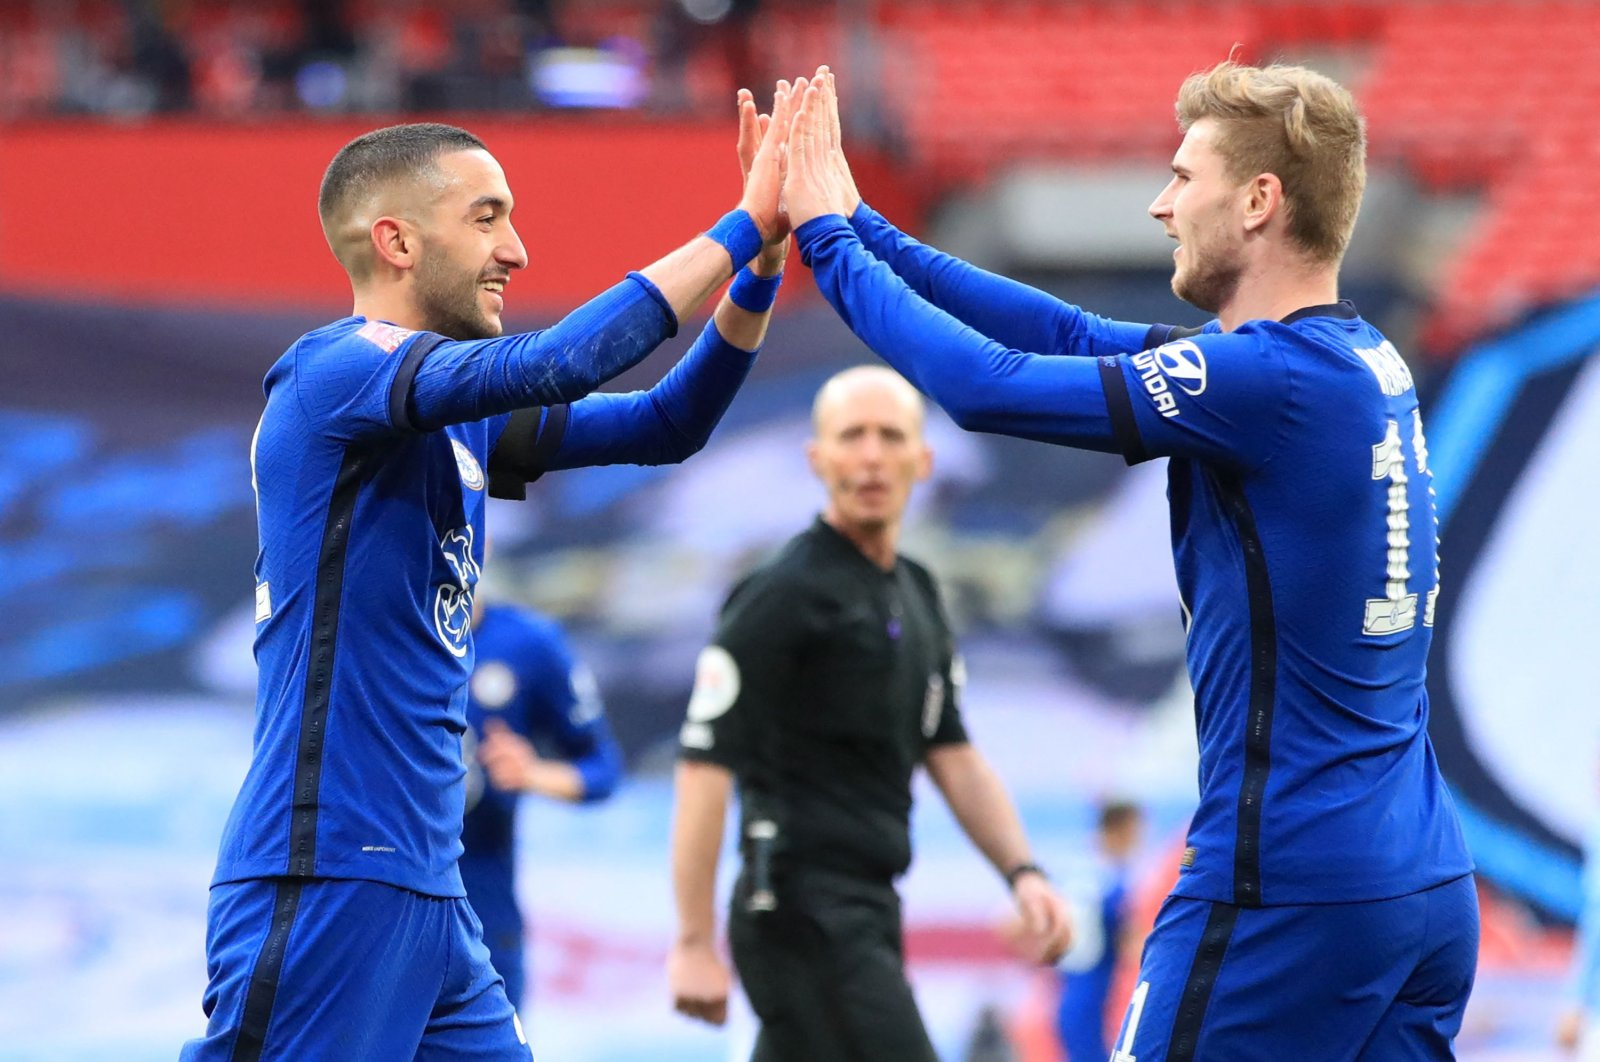 Chelsea's Moroccan midfielder Hakim Ziyech (L) celebrates with striker Timo Werner (R) after scoring the only goal in the English FA Cup semifinal against Manchester City at Wembley Stadium, London, Britain, April 17, 2021. (AFP Photo)